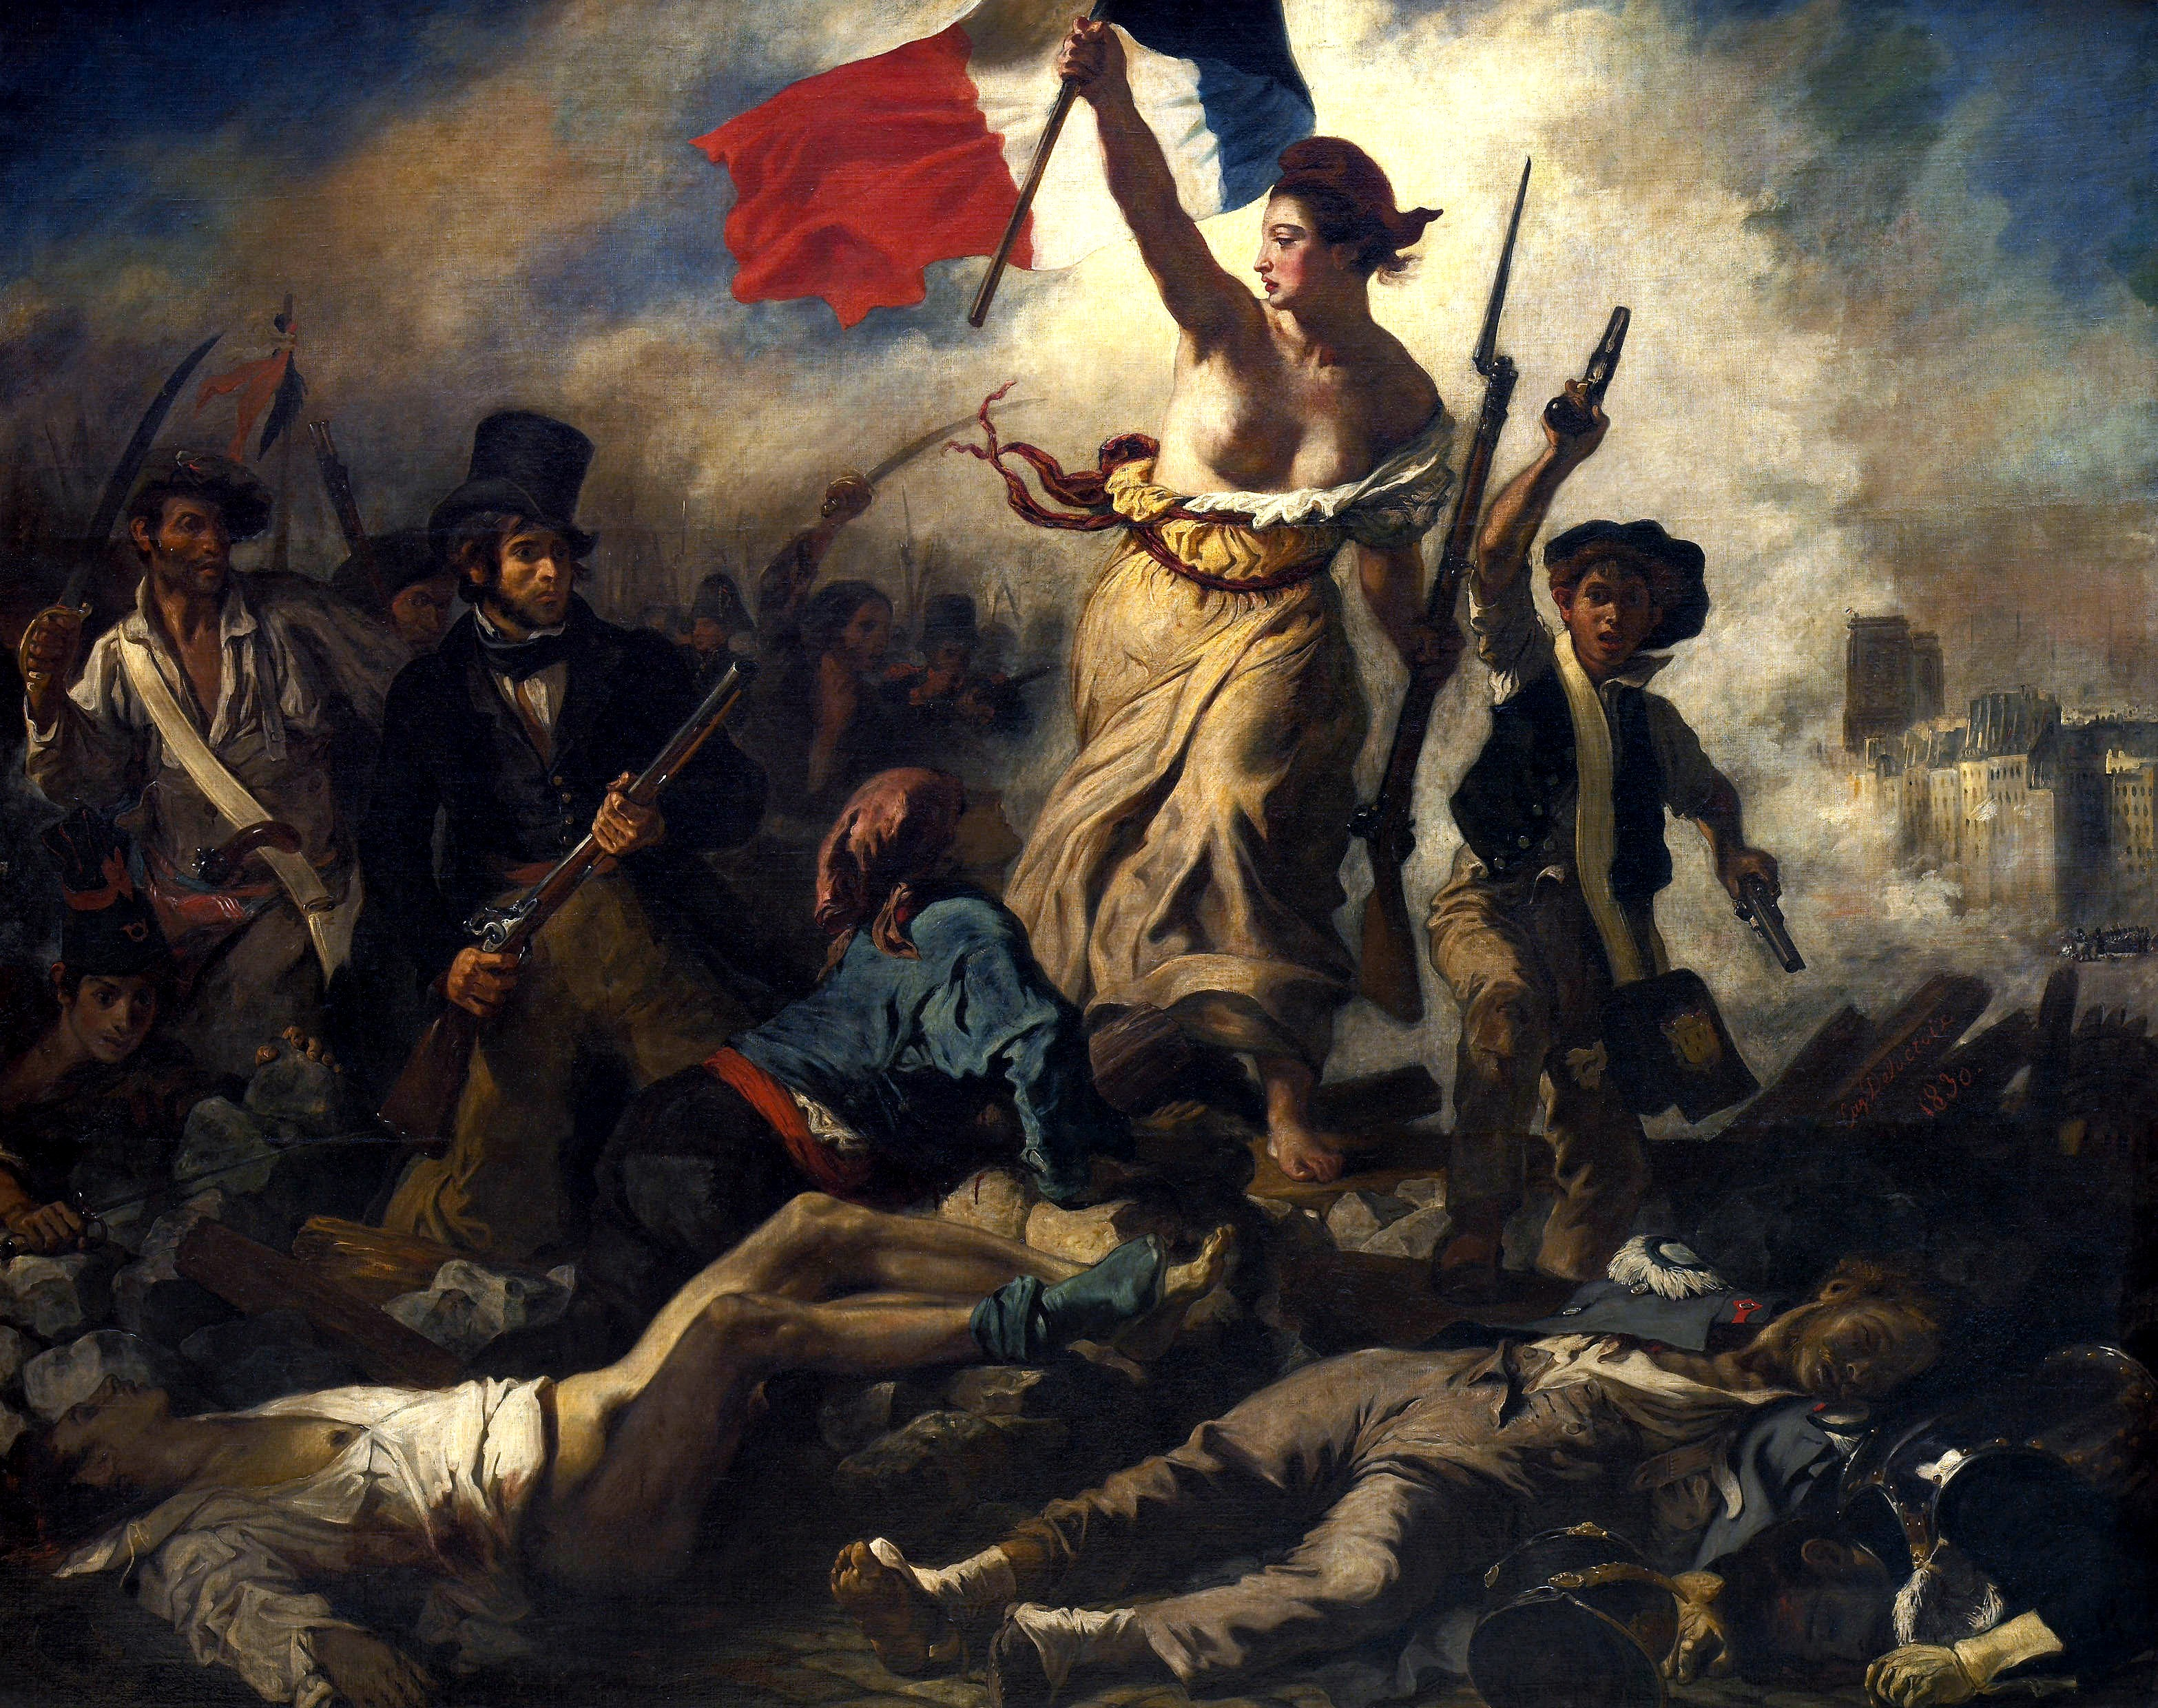 did napoleon do more harm than good to revolutionary france essay What good things did napoleon do he trashed the french revolutionary calendar he created the napoleonic code napoleon gain power in france by his military victories and taking insight on the revolutionary ideas of the people he was a party to a coup against the constitutional government.